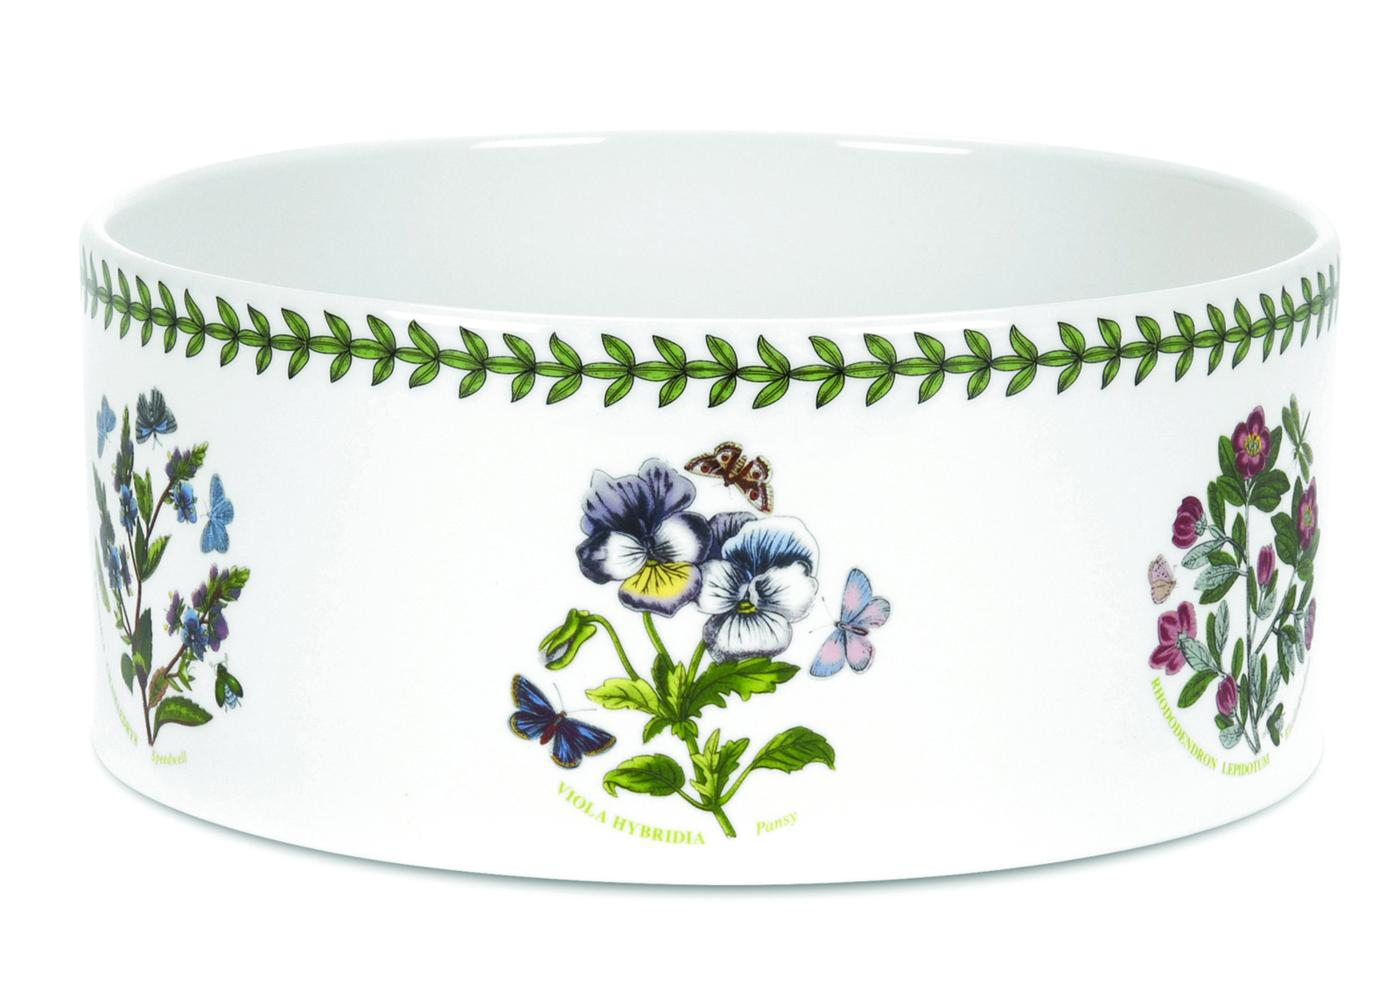 Botanic Garden 8 Inch Souffle Dish (Assorted Motifs) image number 0